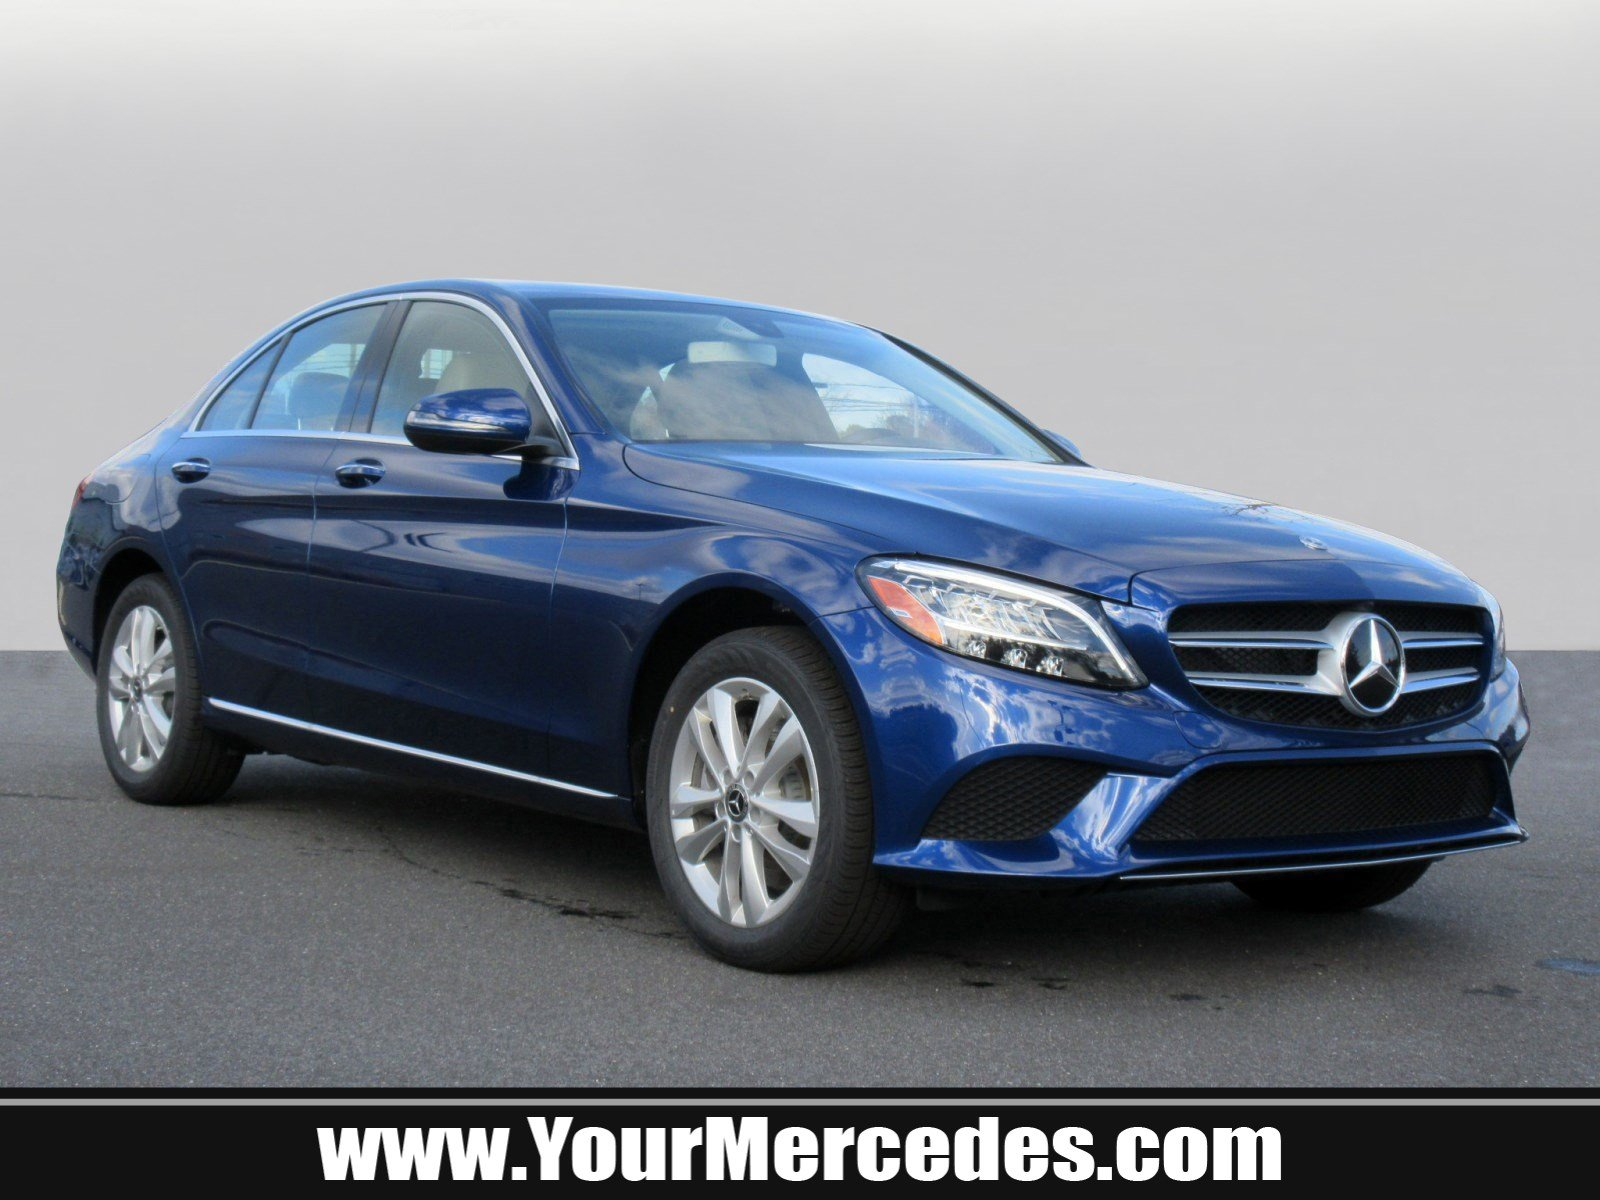 New 2019 Mercedes Benz C Class C 300 4dr Car in Egg Harbor Township